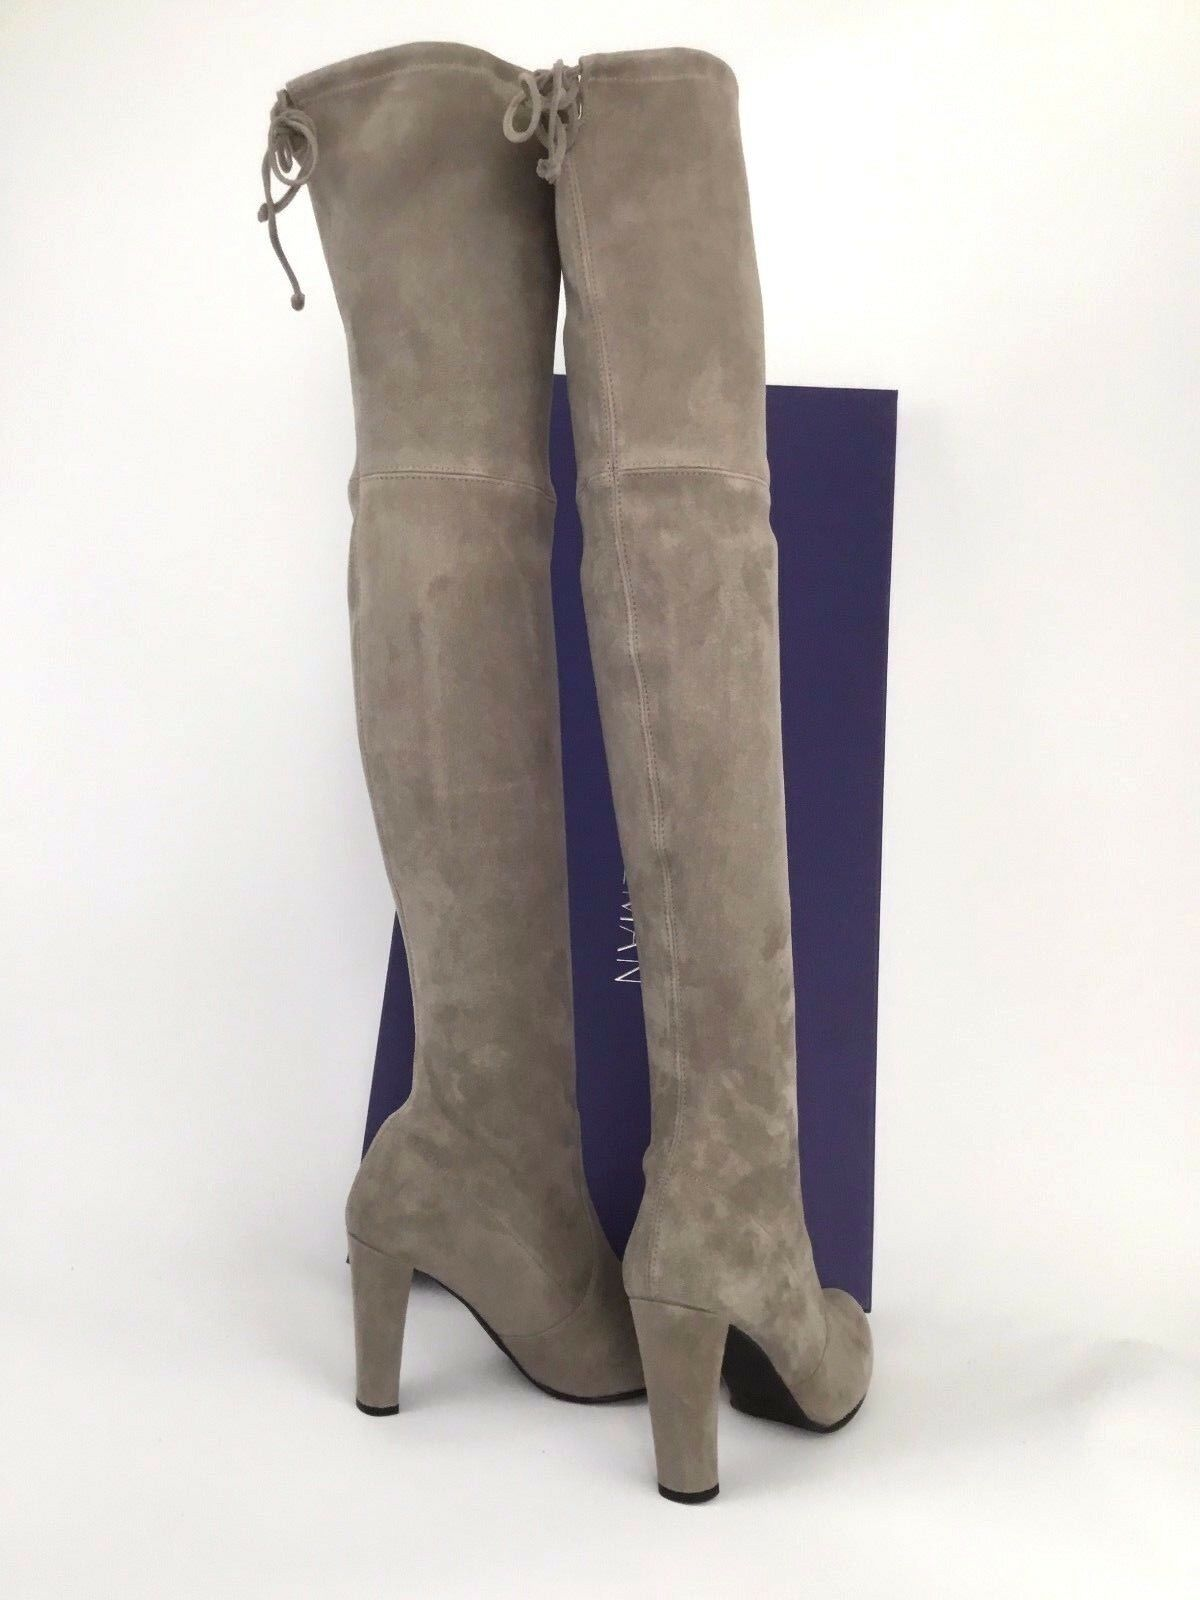 798.00 Stuart Weitzman Highland Over-the-knee Topo Suede Boot Size 7.5